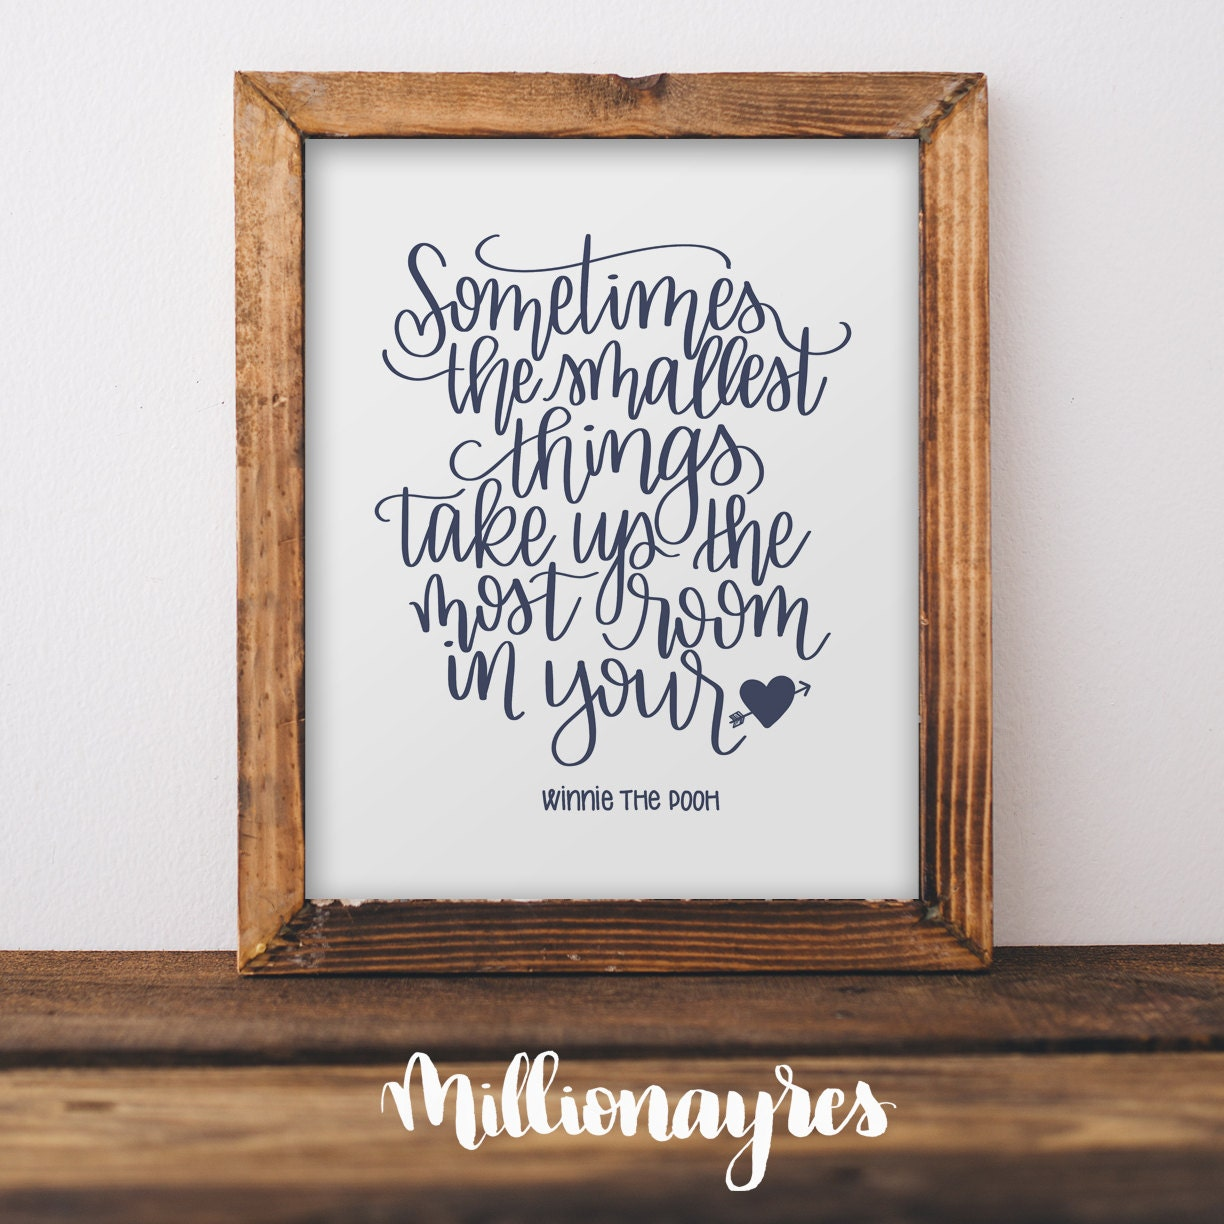 Winnie The Pooh Quotes Sometimes The Smallest Things: Winnie The Pooh Printable Quote Sometimes The Smallest Things